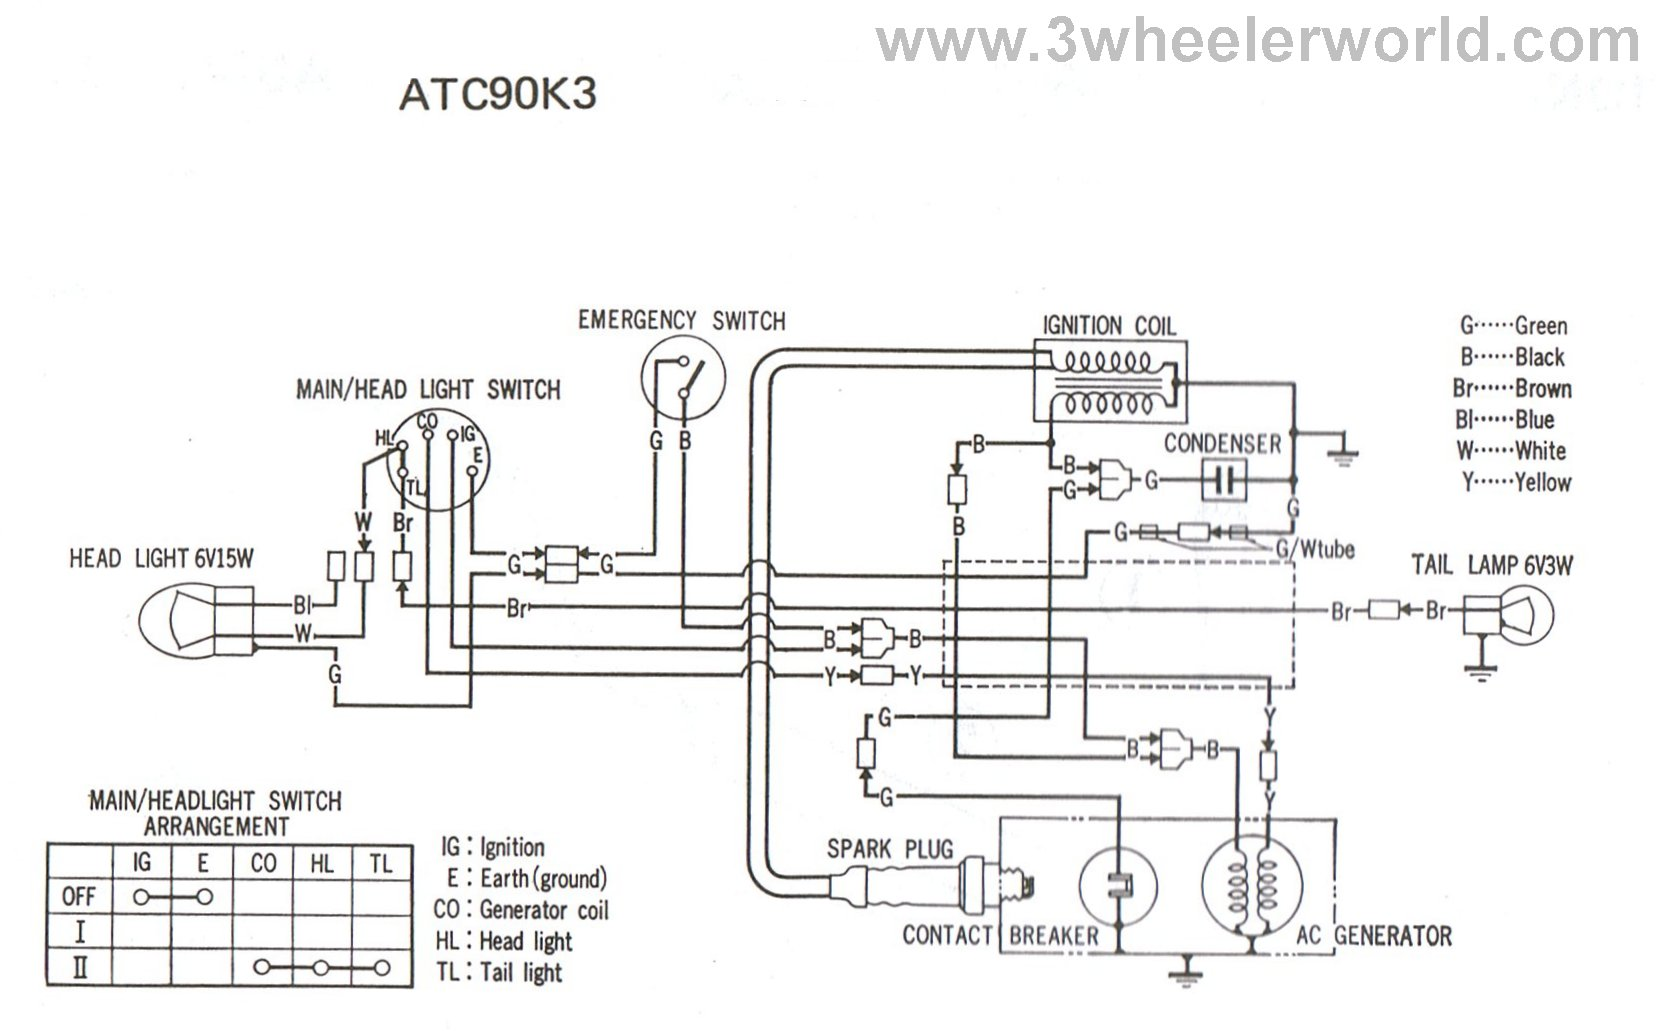 ATC90K3HM wiring diagram polaris xplorer 300 the wiring diagram polaris snowmobile wiring diagrams at alyssarenee.co